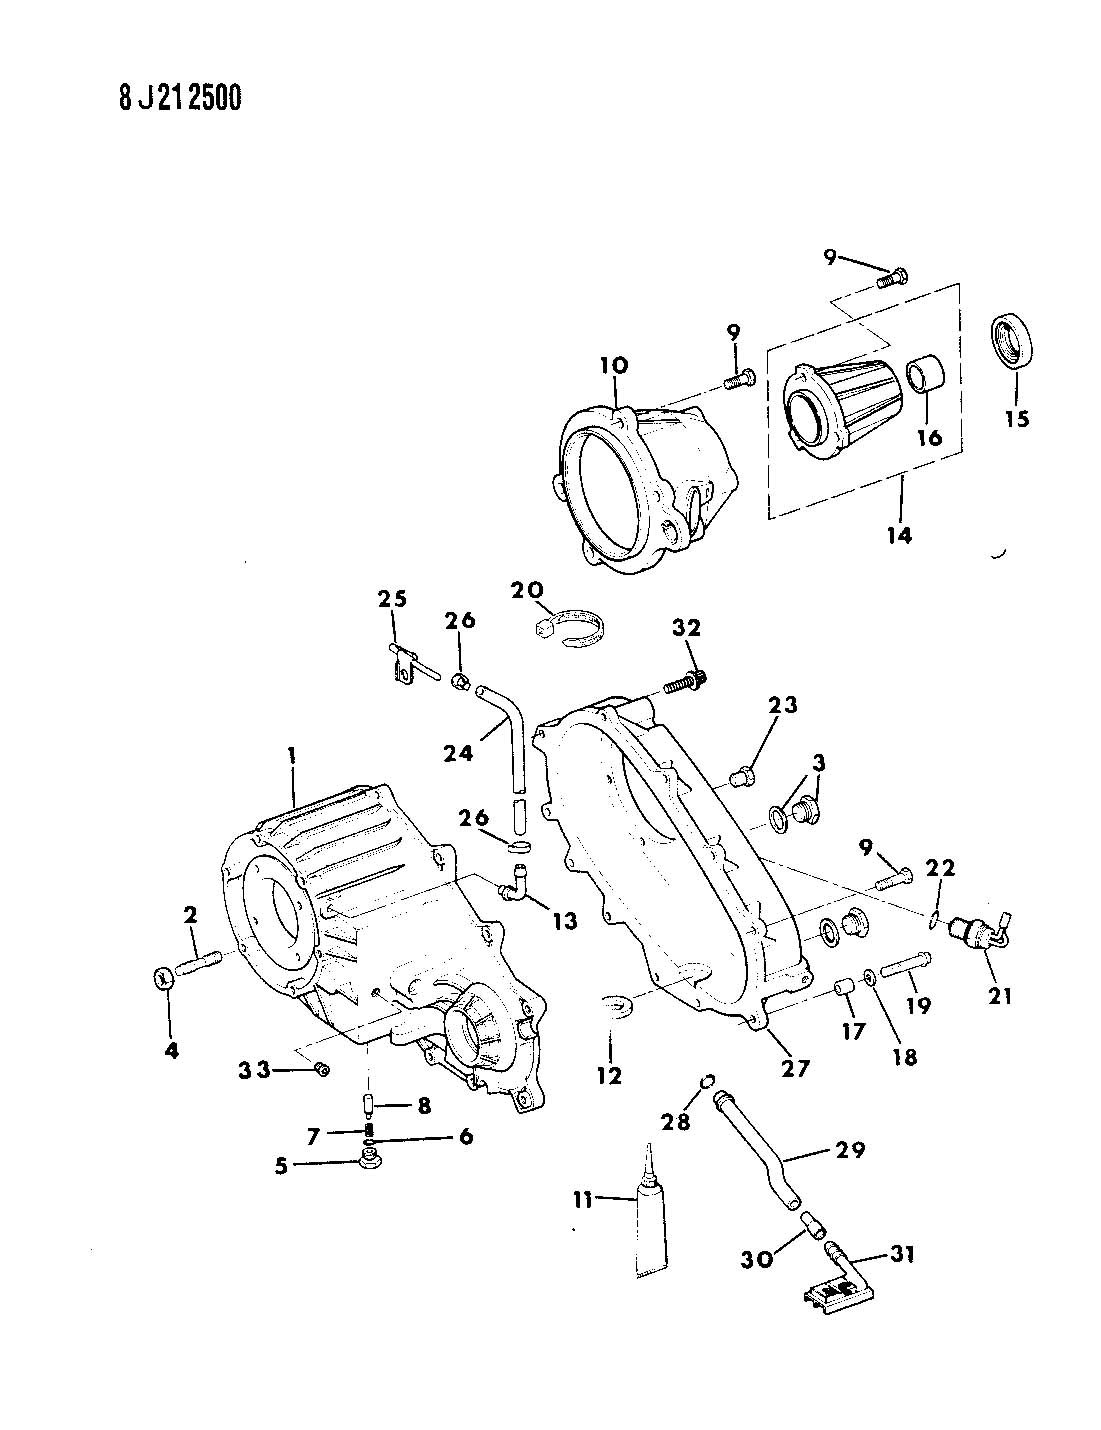 2001 jeep wrangler starter wiring diagram circuit breaker box automatic transmission parts